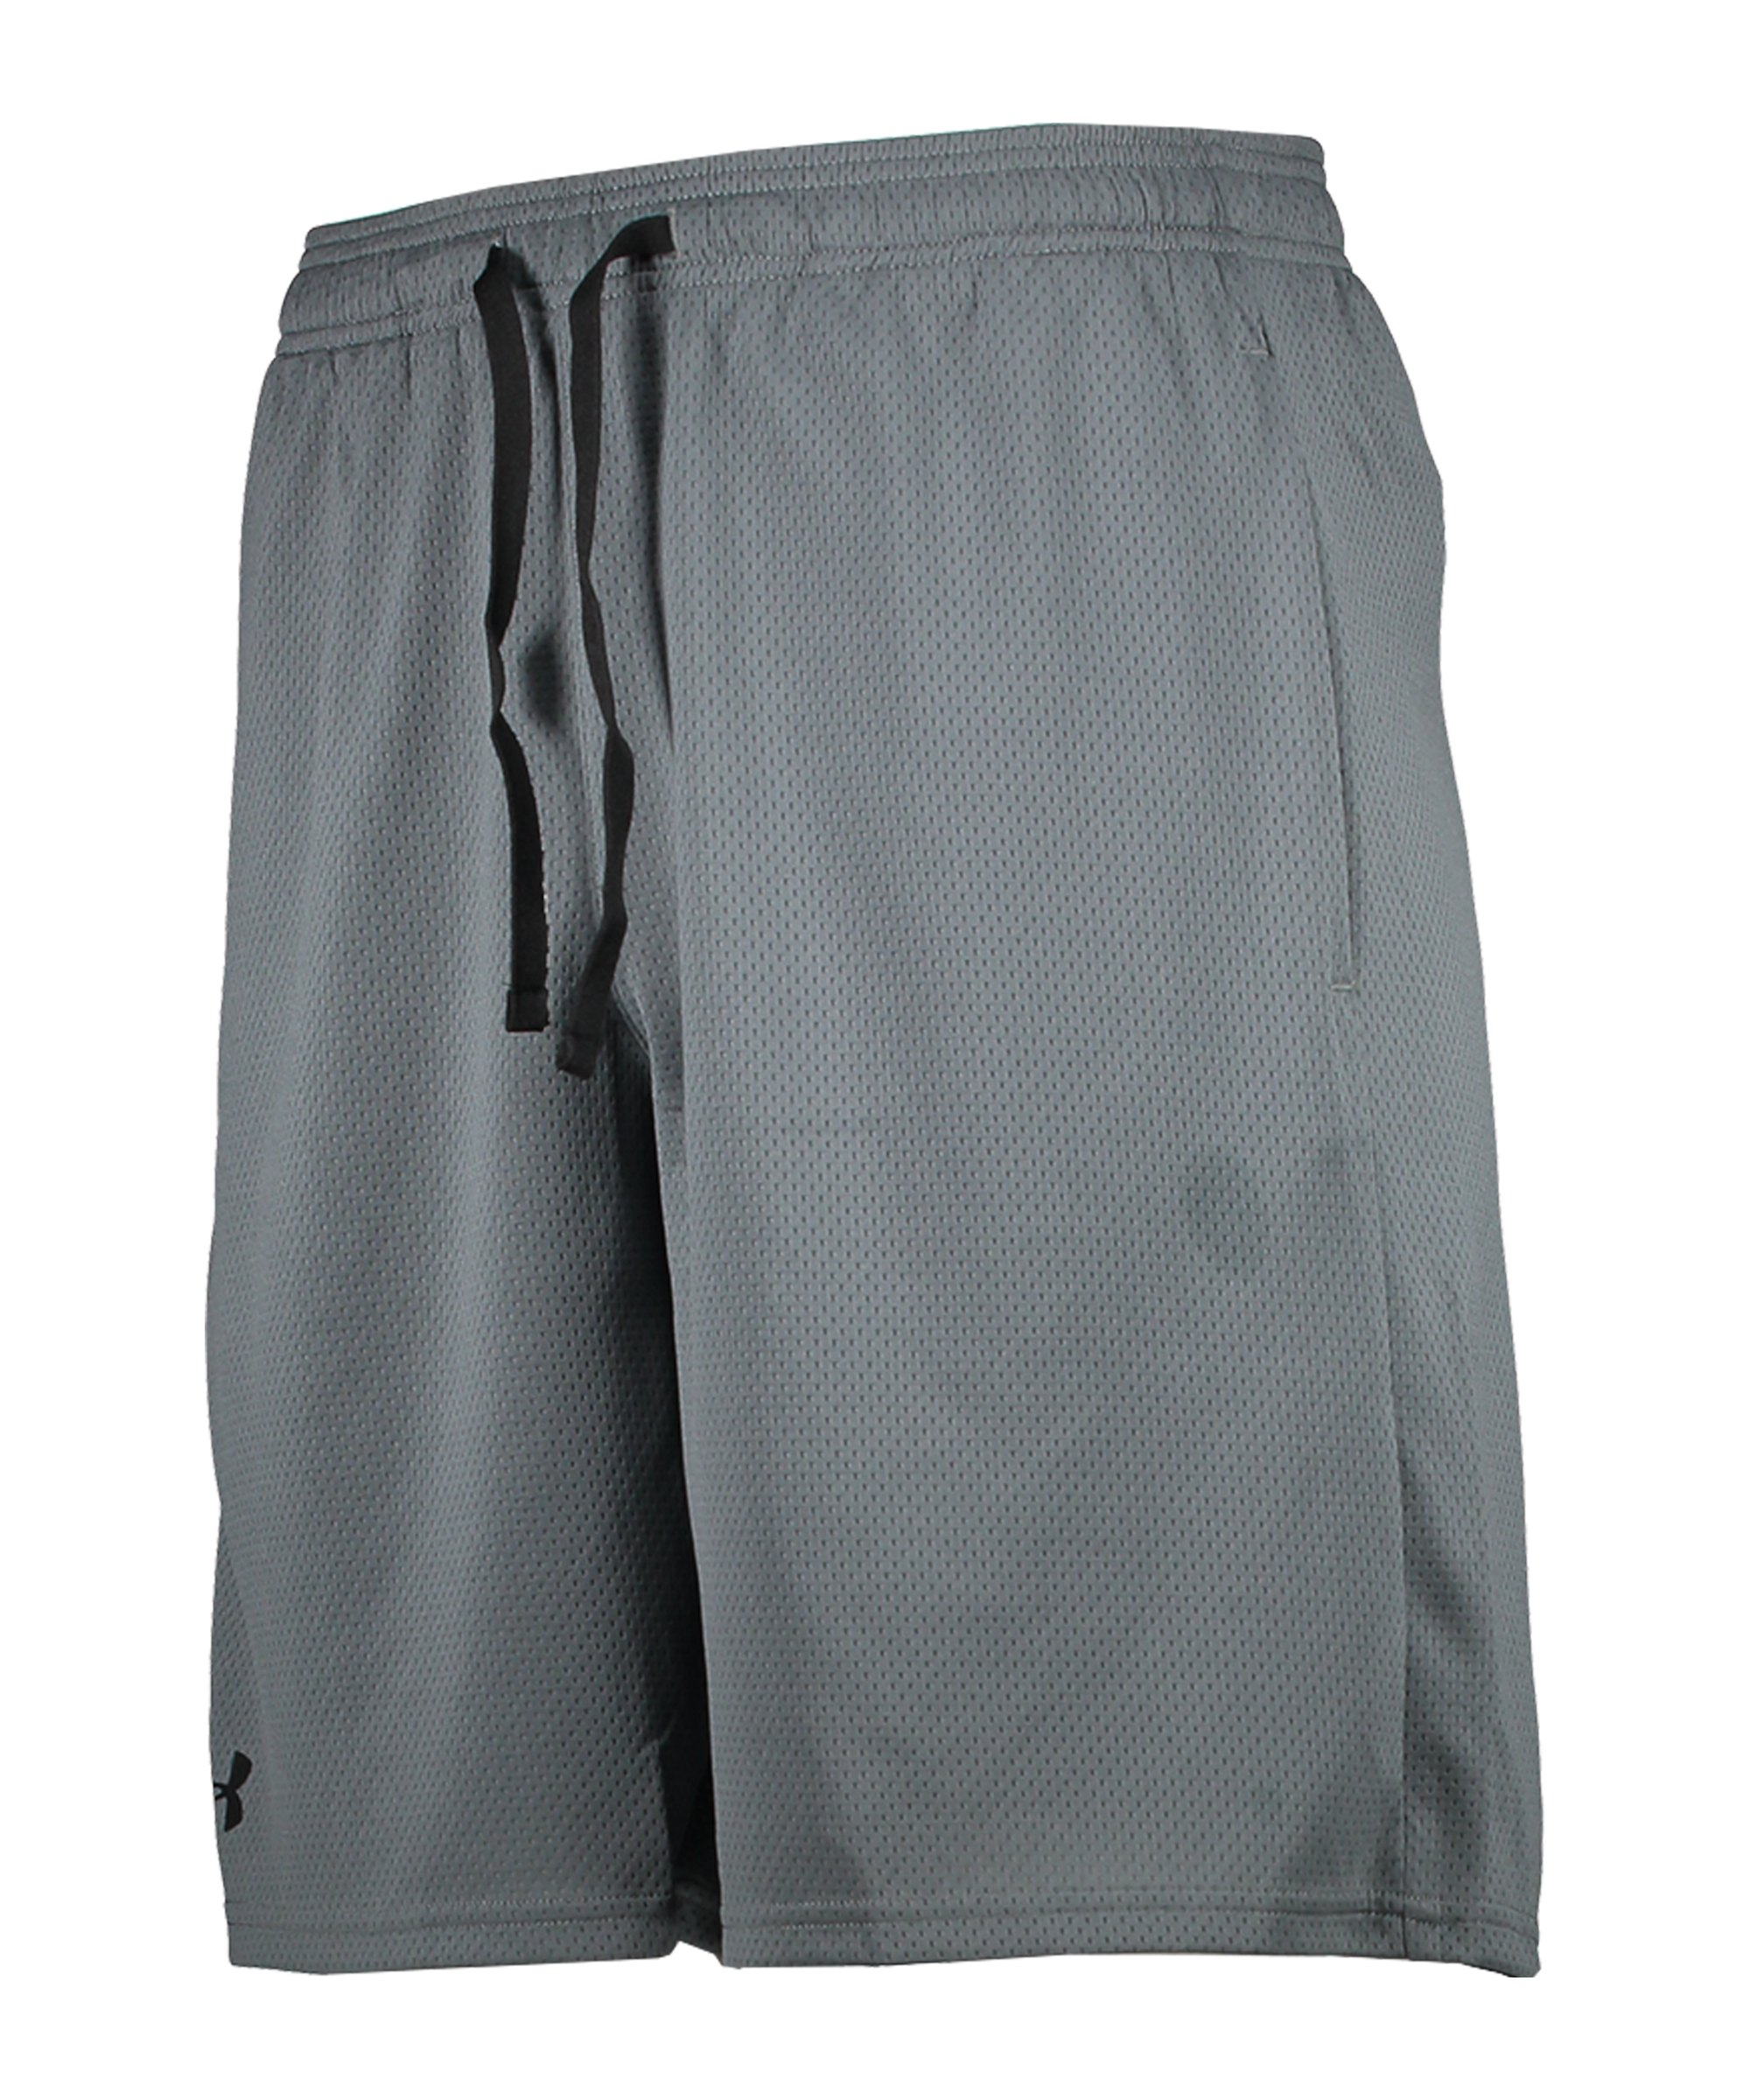 Under Armour Tech Mesh Short Grau F012 - grau